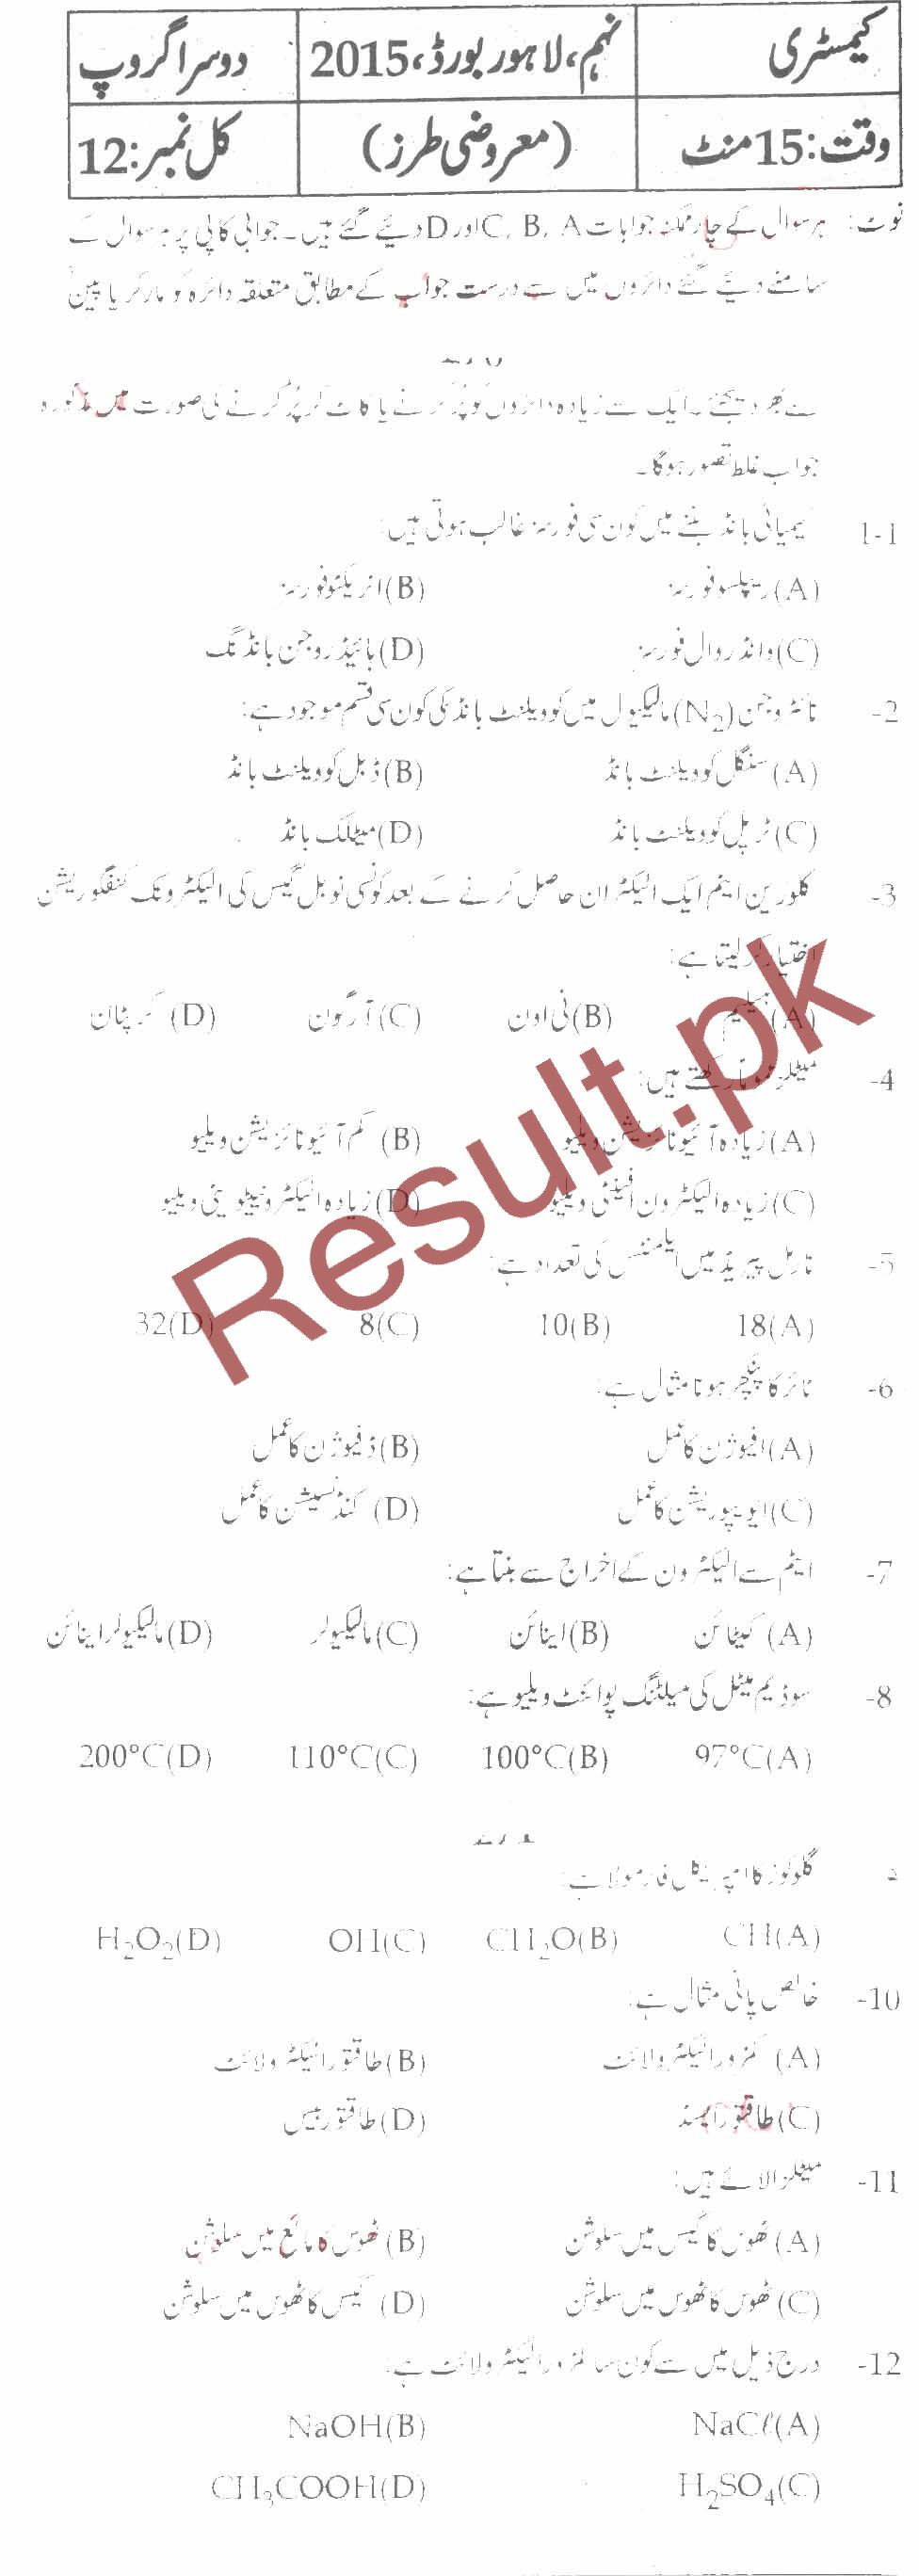 BISE Faisalabad Board Past Papers 2018 Matric, SSC Part 1